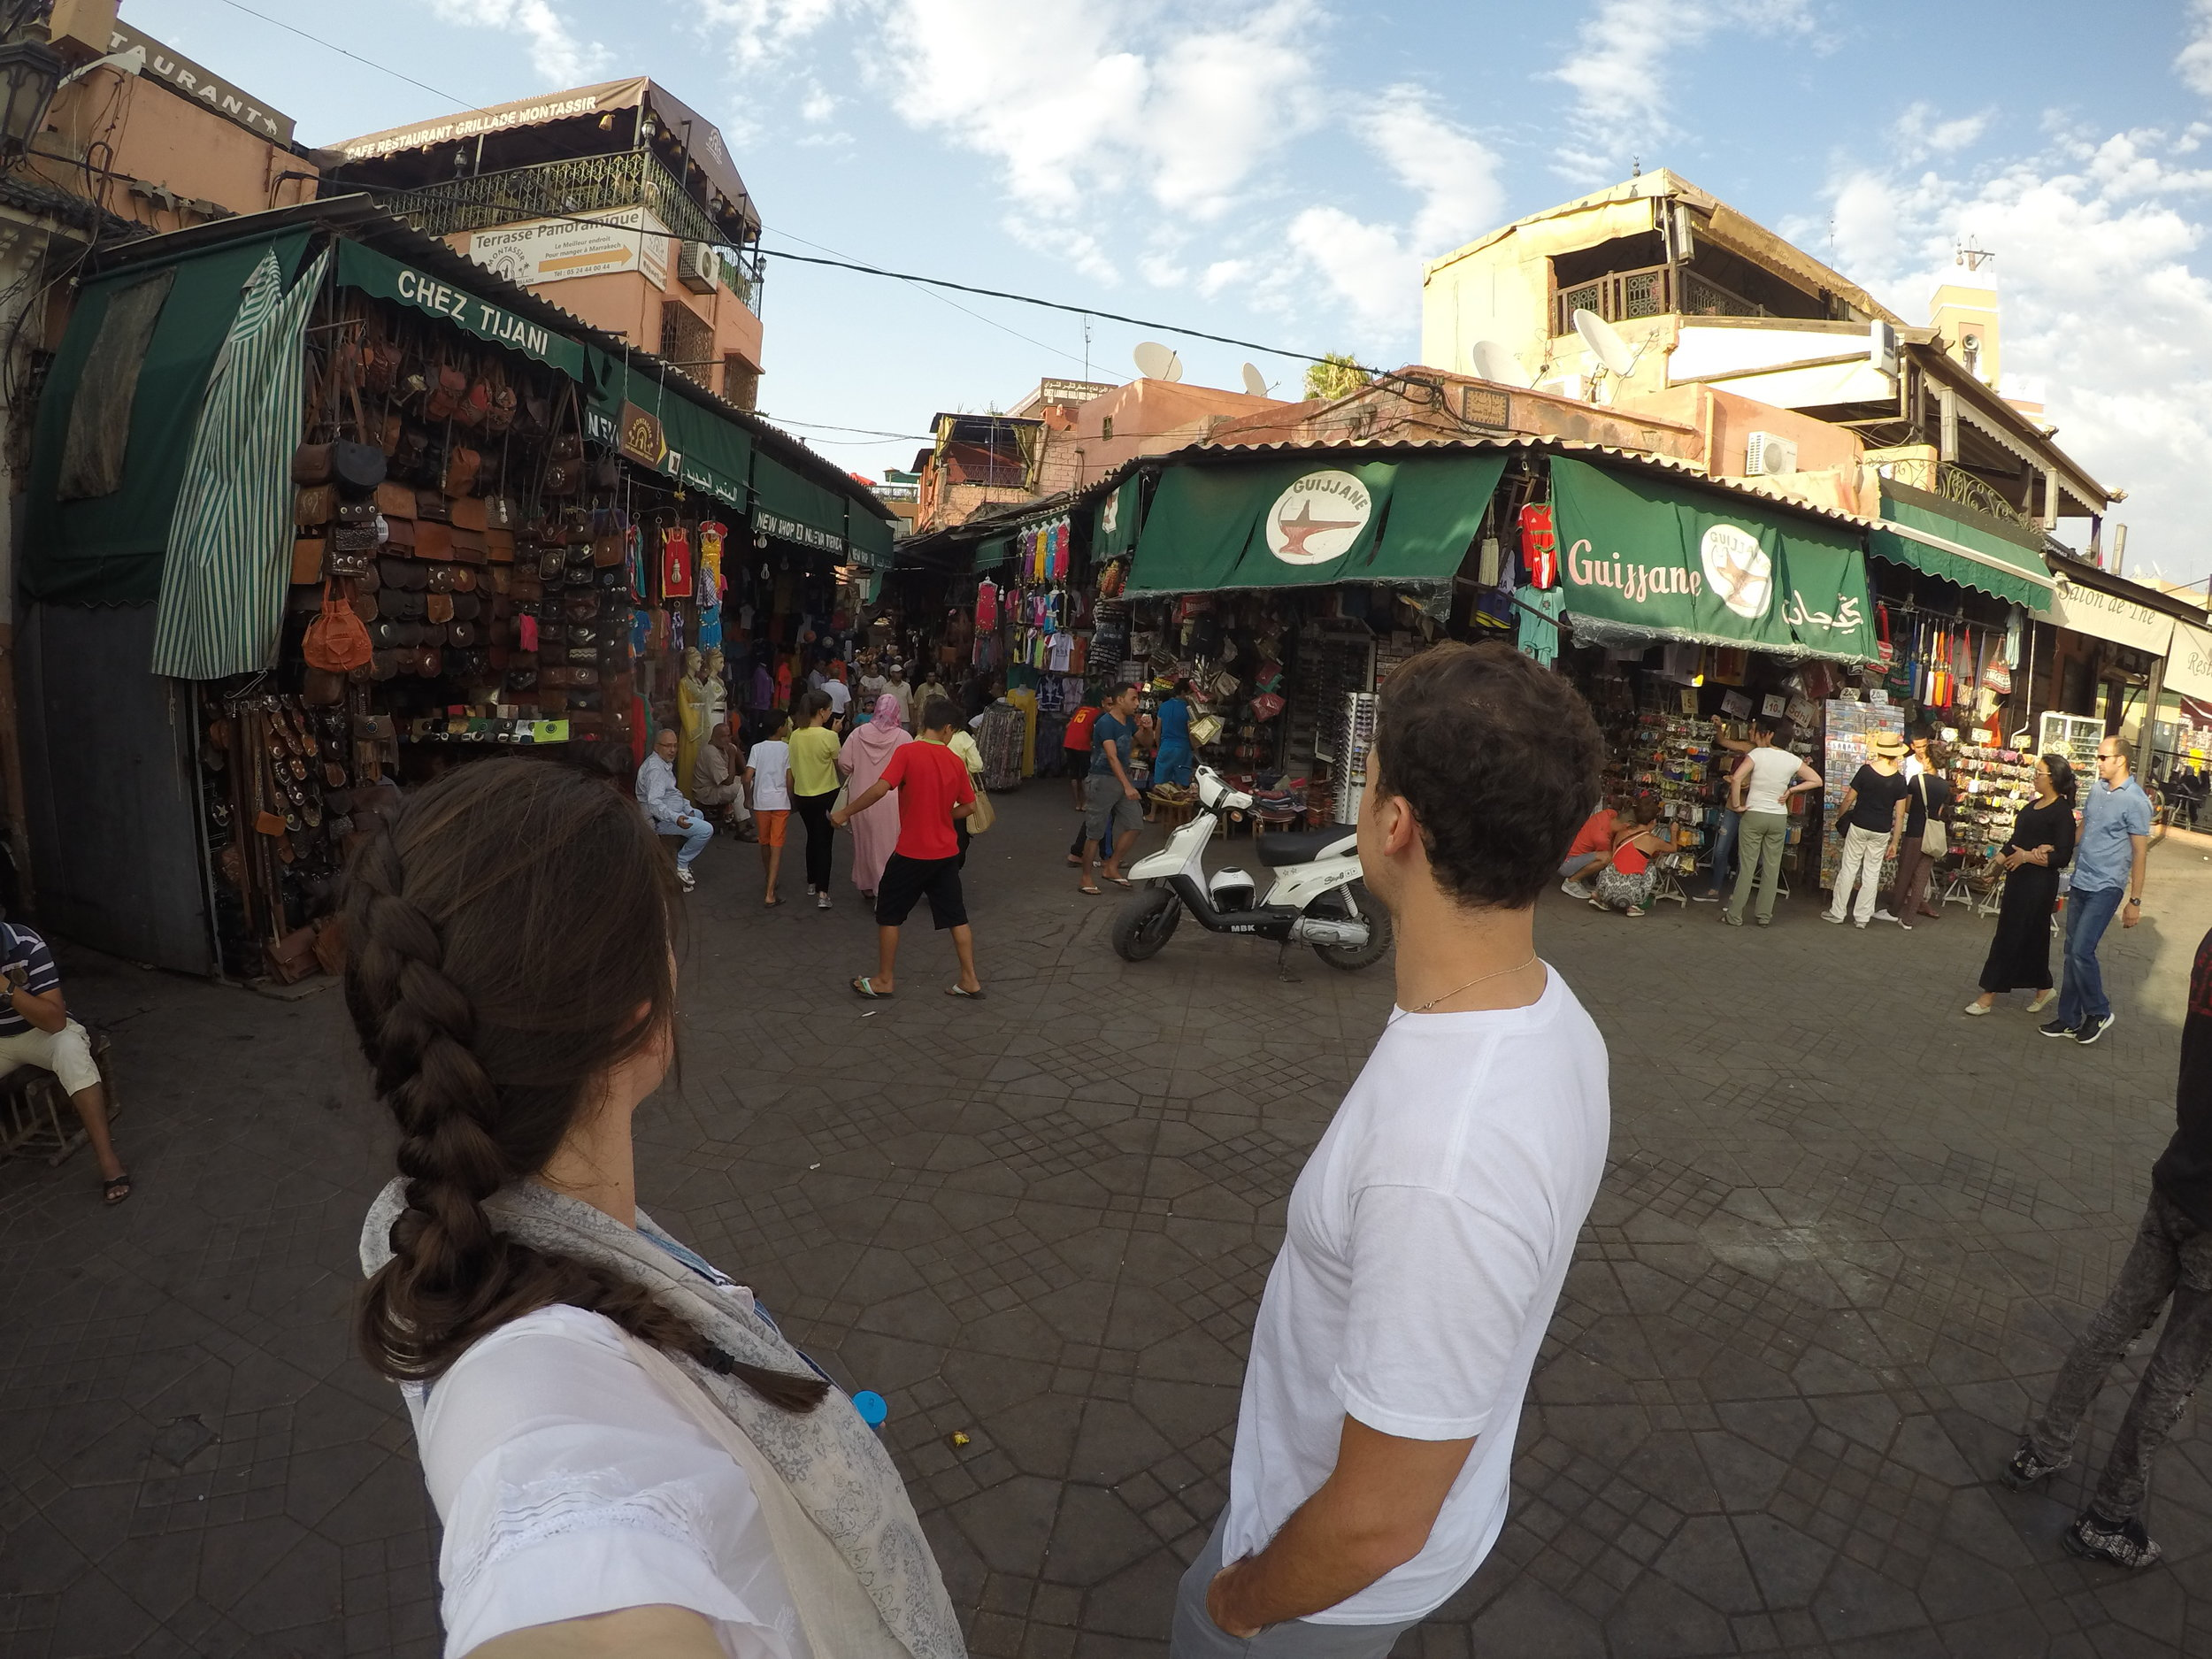 Wandering around the souk